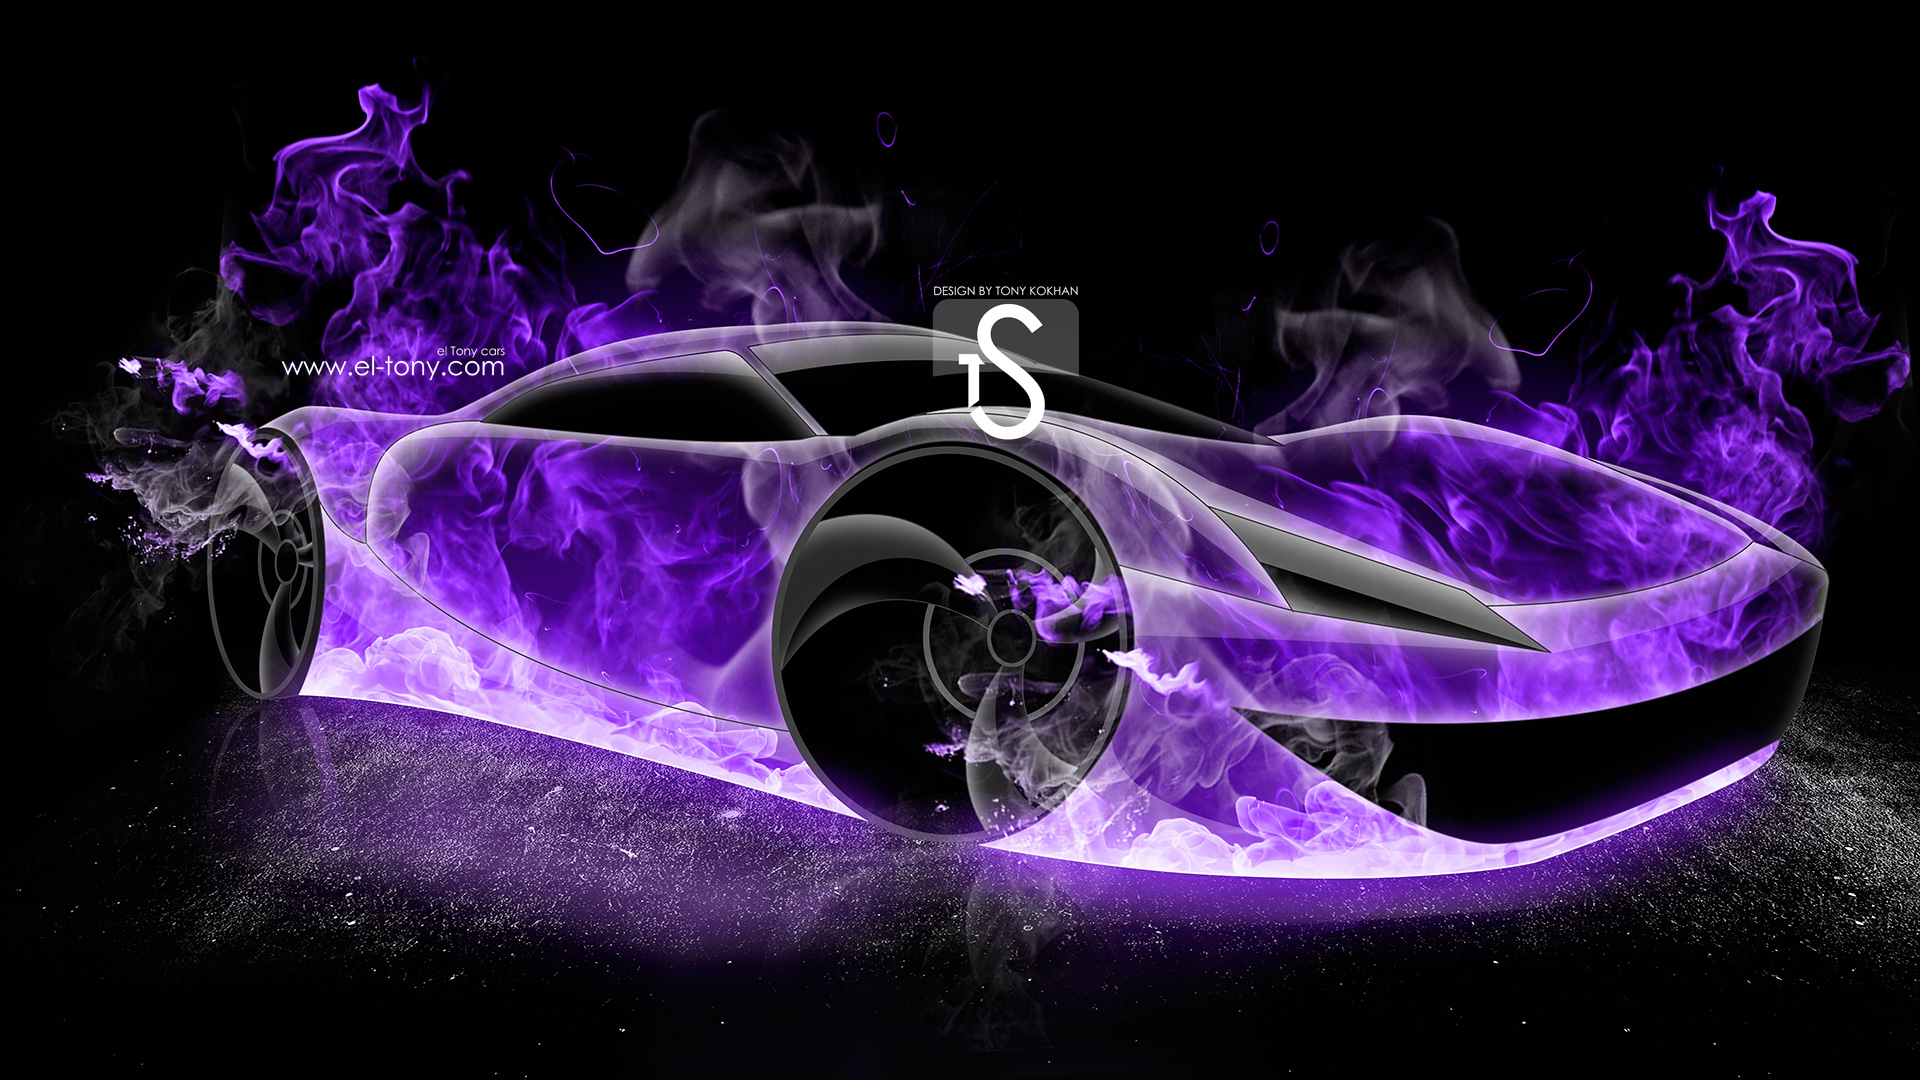 Jet Engine Hd Wallpaper Ts Fire Abstract Car 2013 El Tony